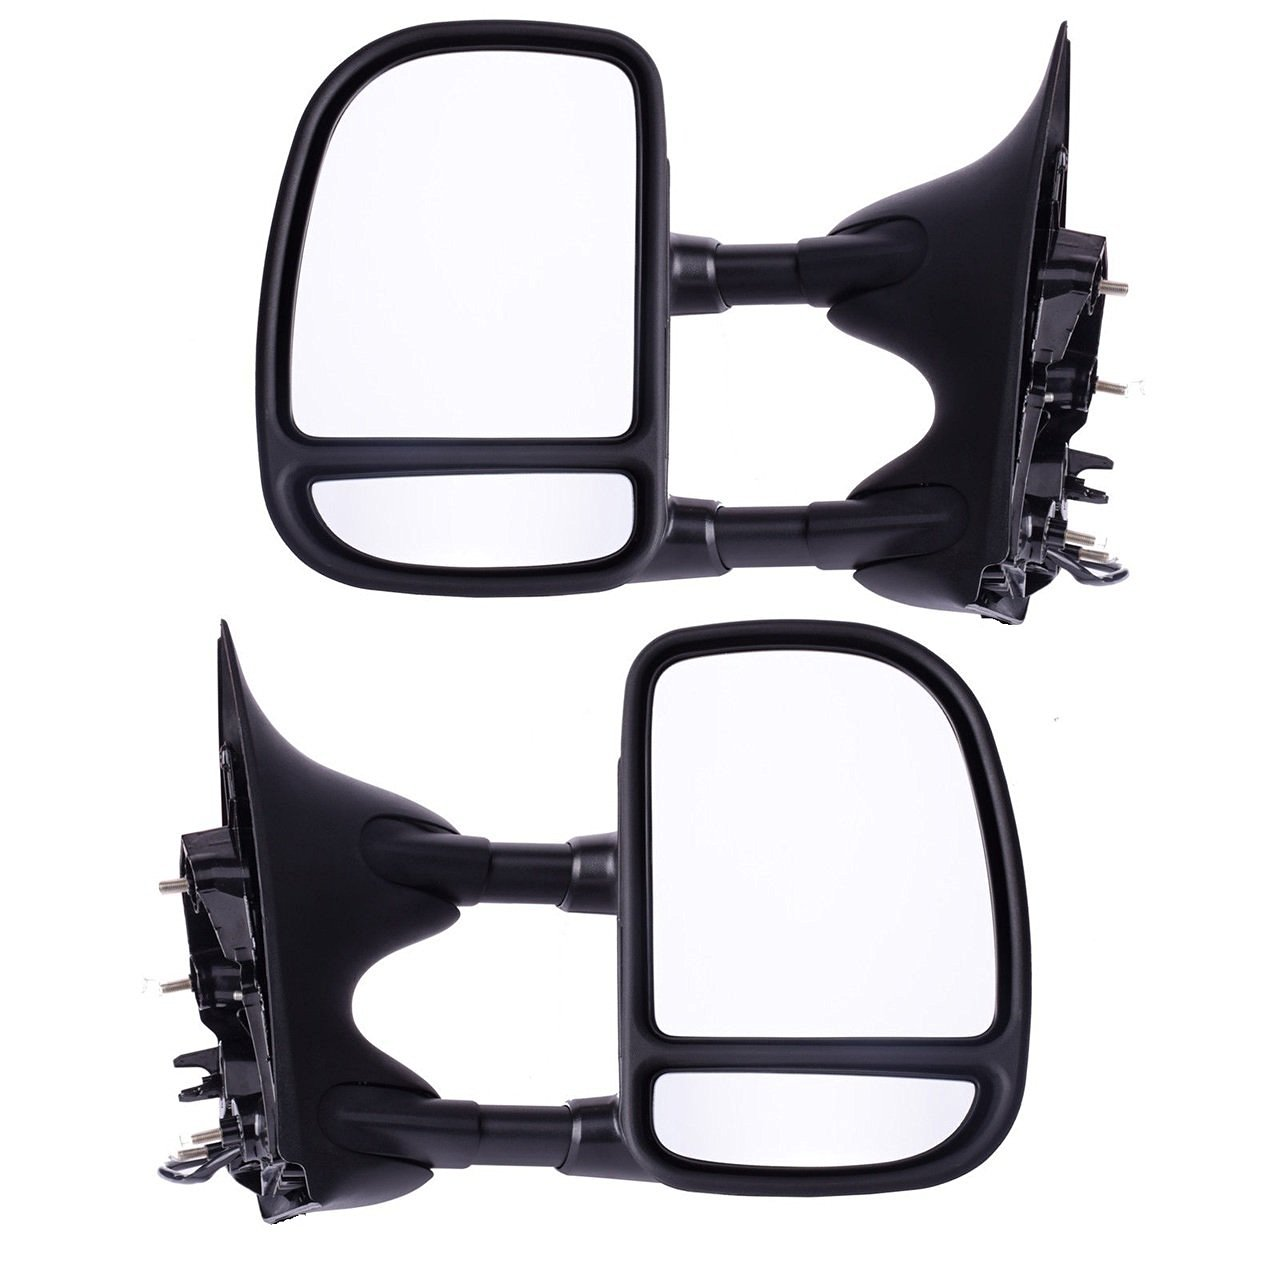 Nova 99-07 Ford Pickup Truck Super Duty F250 F350 Power Heated Mirrors Tow Mirrors Pair No Light